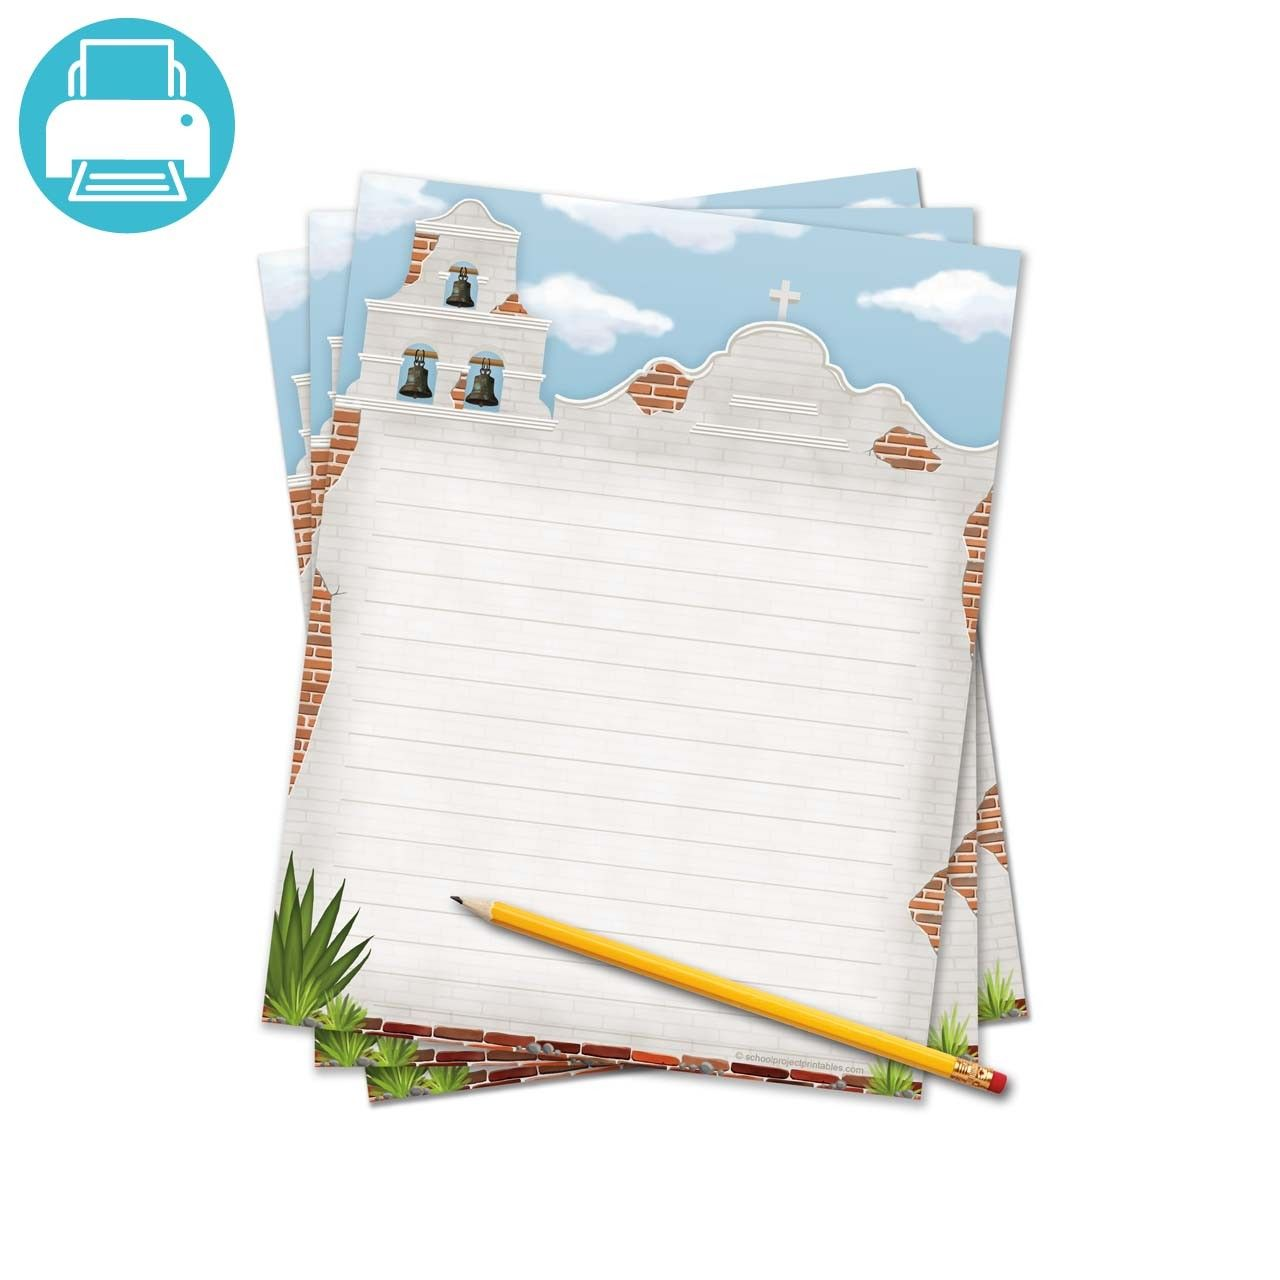 California Missions Writing Template Border Paper